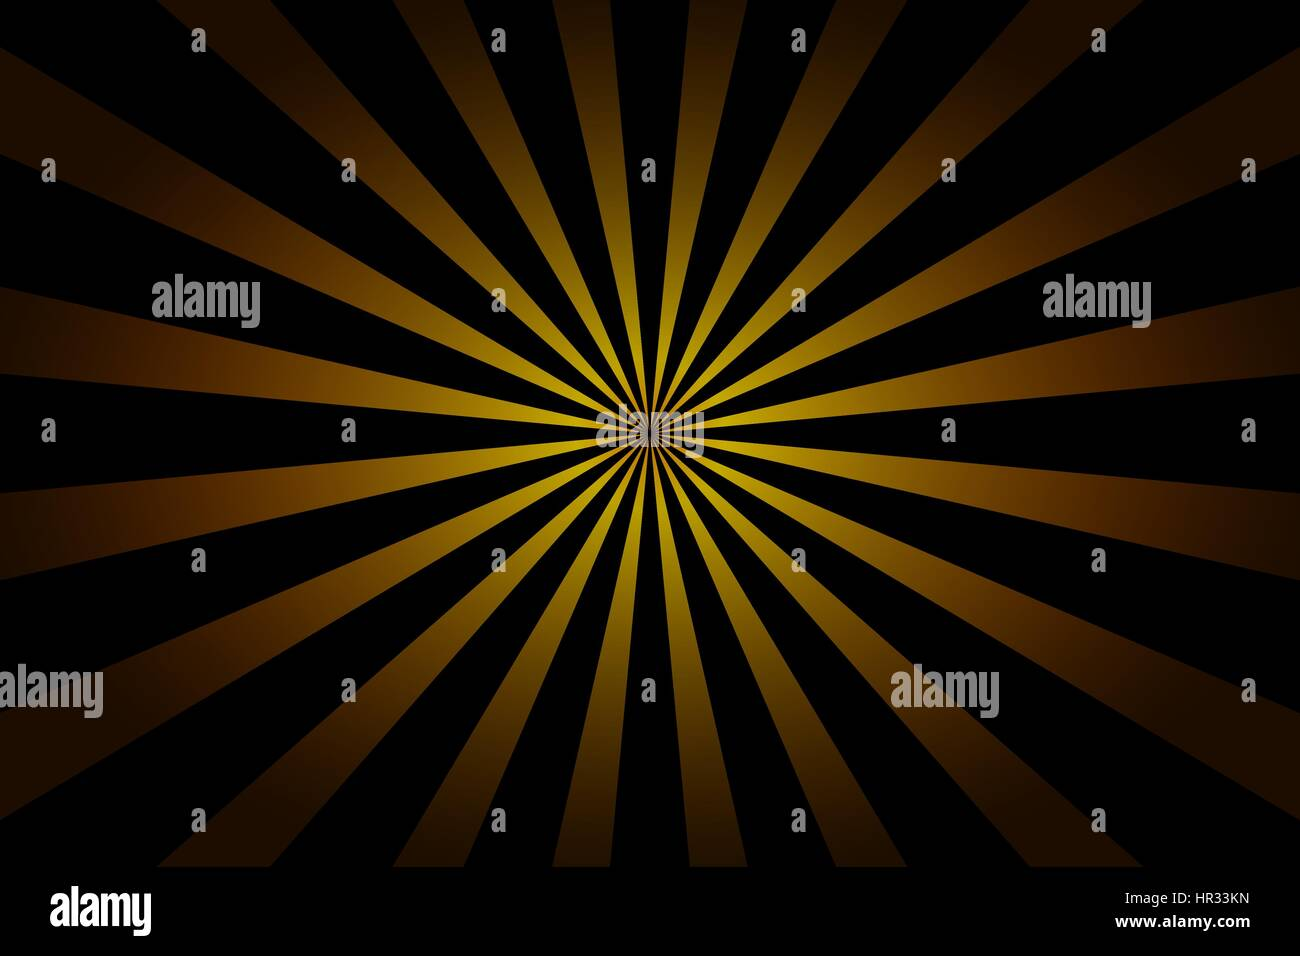 Striped black and yellow abstract background - Stock Image